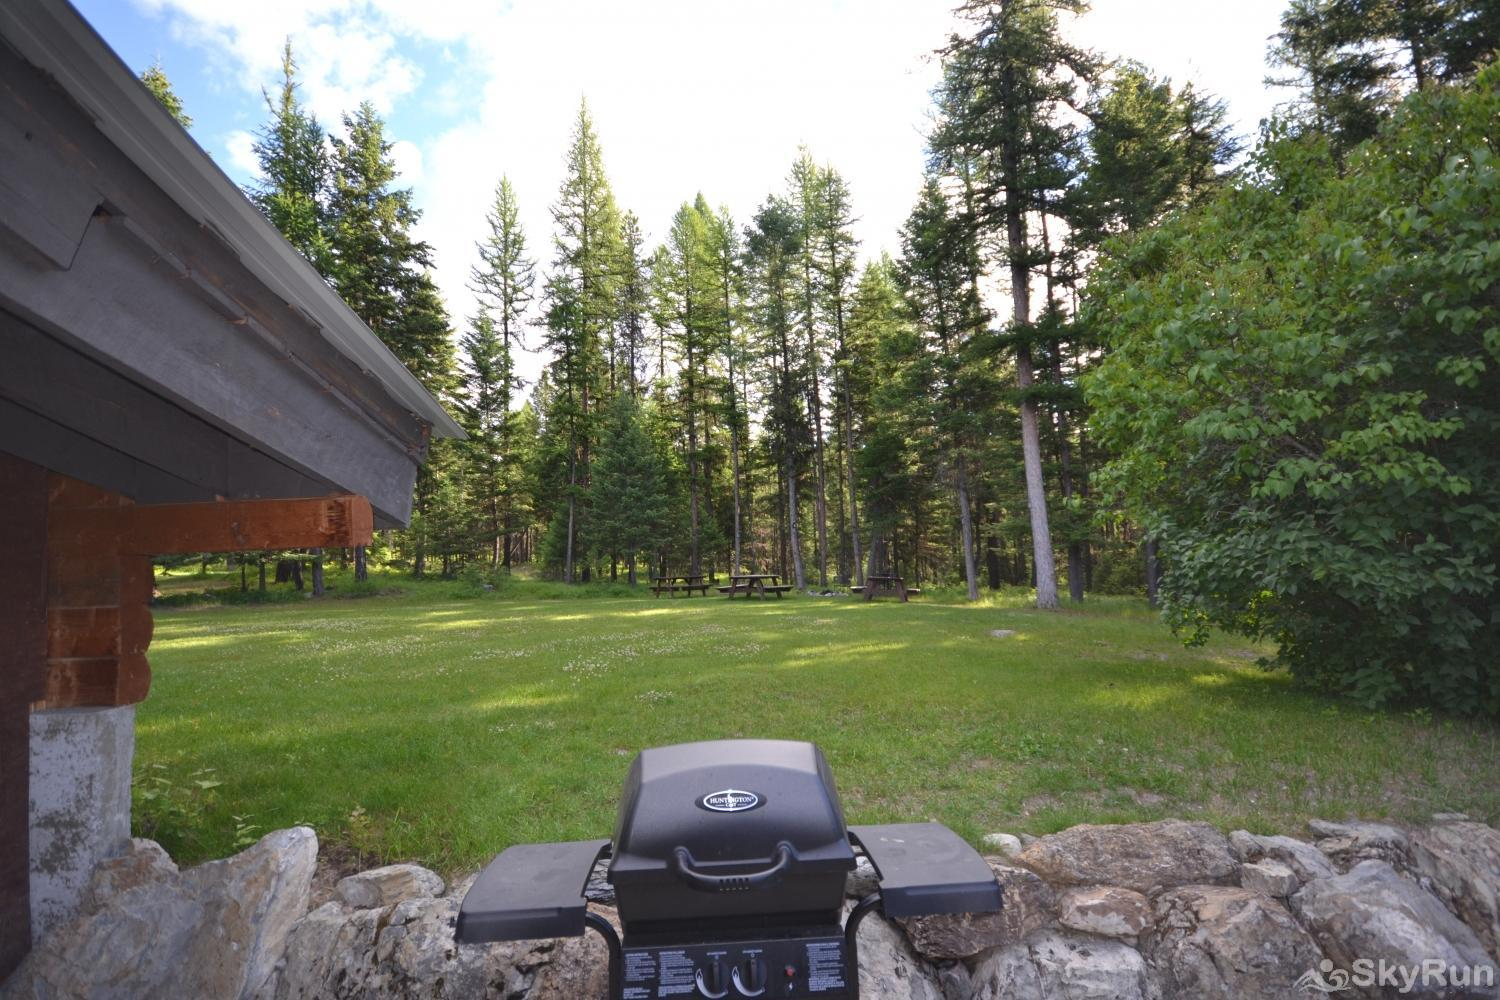 The Studio at Stillwater Mountain Lodge Shared propane grill area with Great house